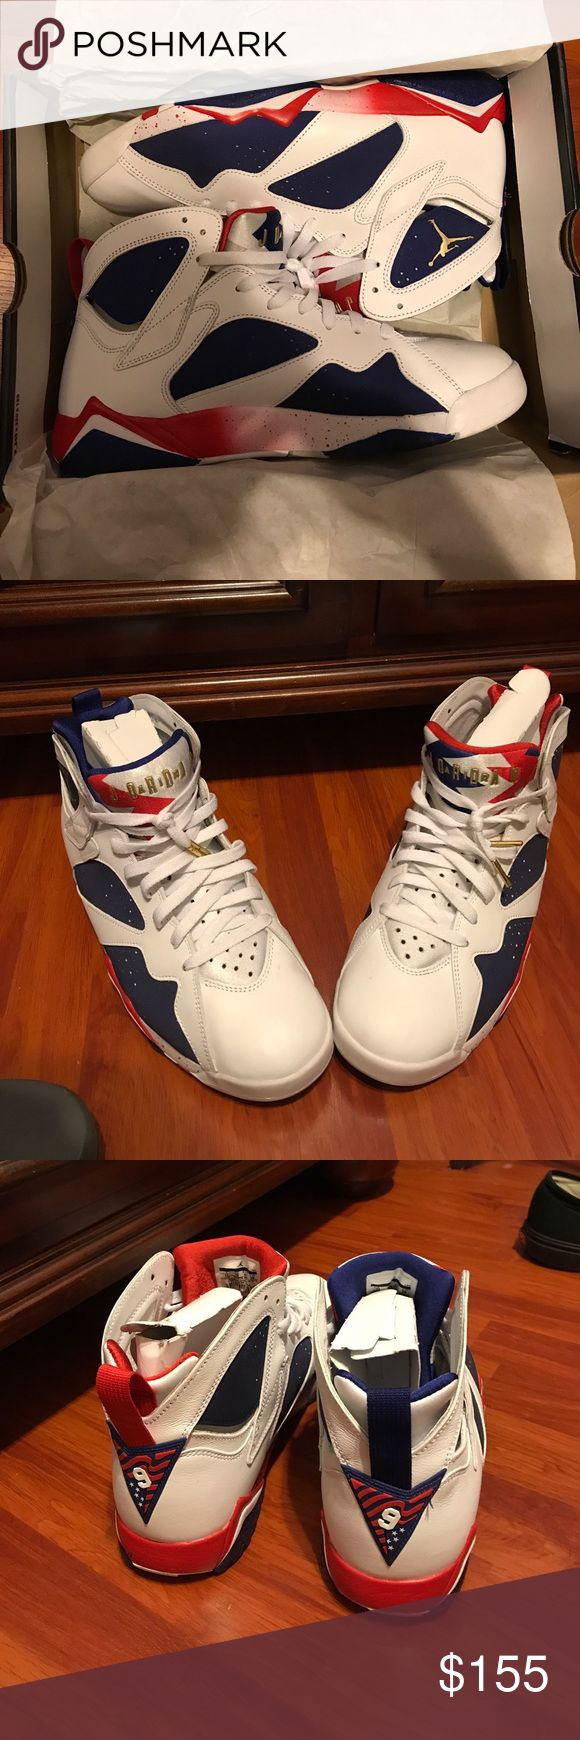 Brand New Jordan retro7 Olympic alternate size 11 Brand new with box worn once is in Great condition Jordan Shoes Sneakers